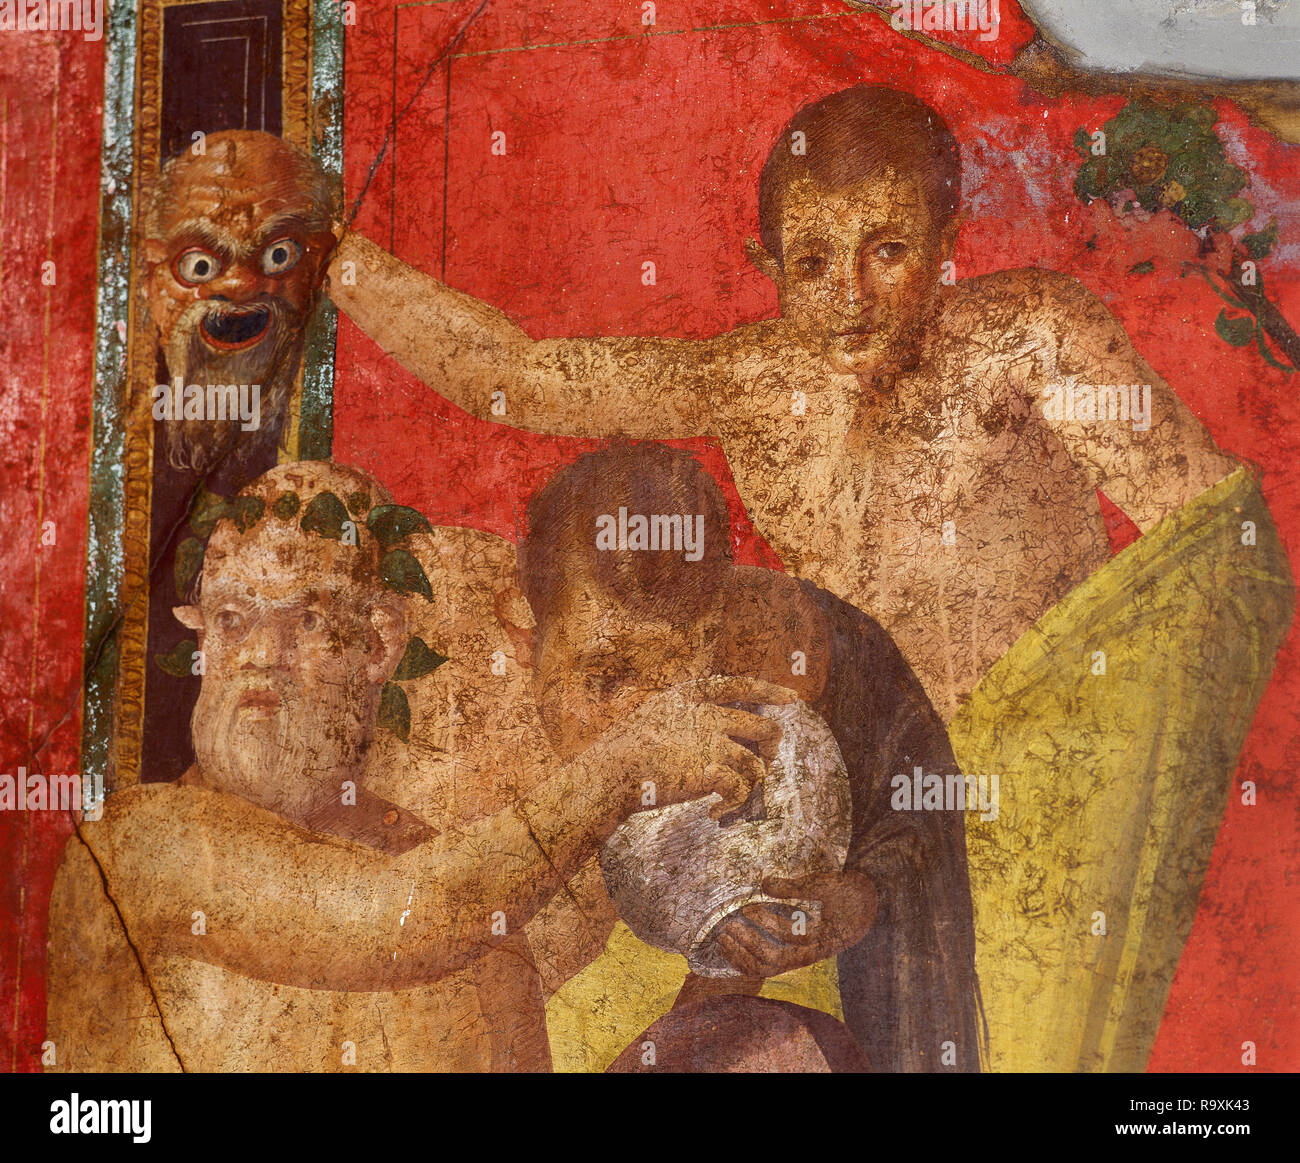 Italy. Pompeii. Villa of the Mysteries. Suburban Roman Villa. Dionysiac frieze, detail. Young satyr being offered a bowl of wine by Silenus while, behind him, another satyr holds up a frightening mask. Before 79 AD. Campania. - Stock Image